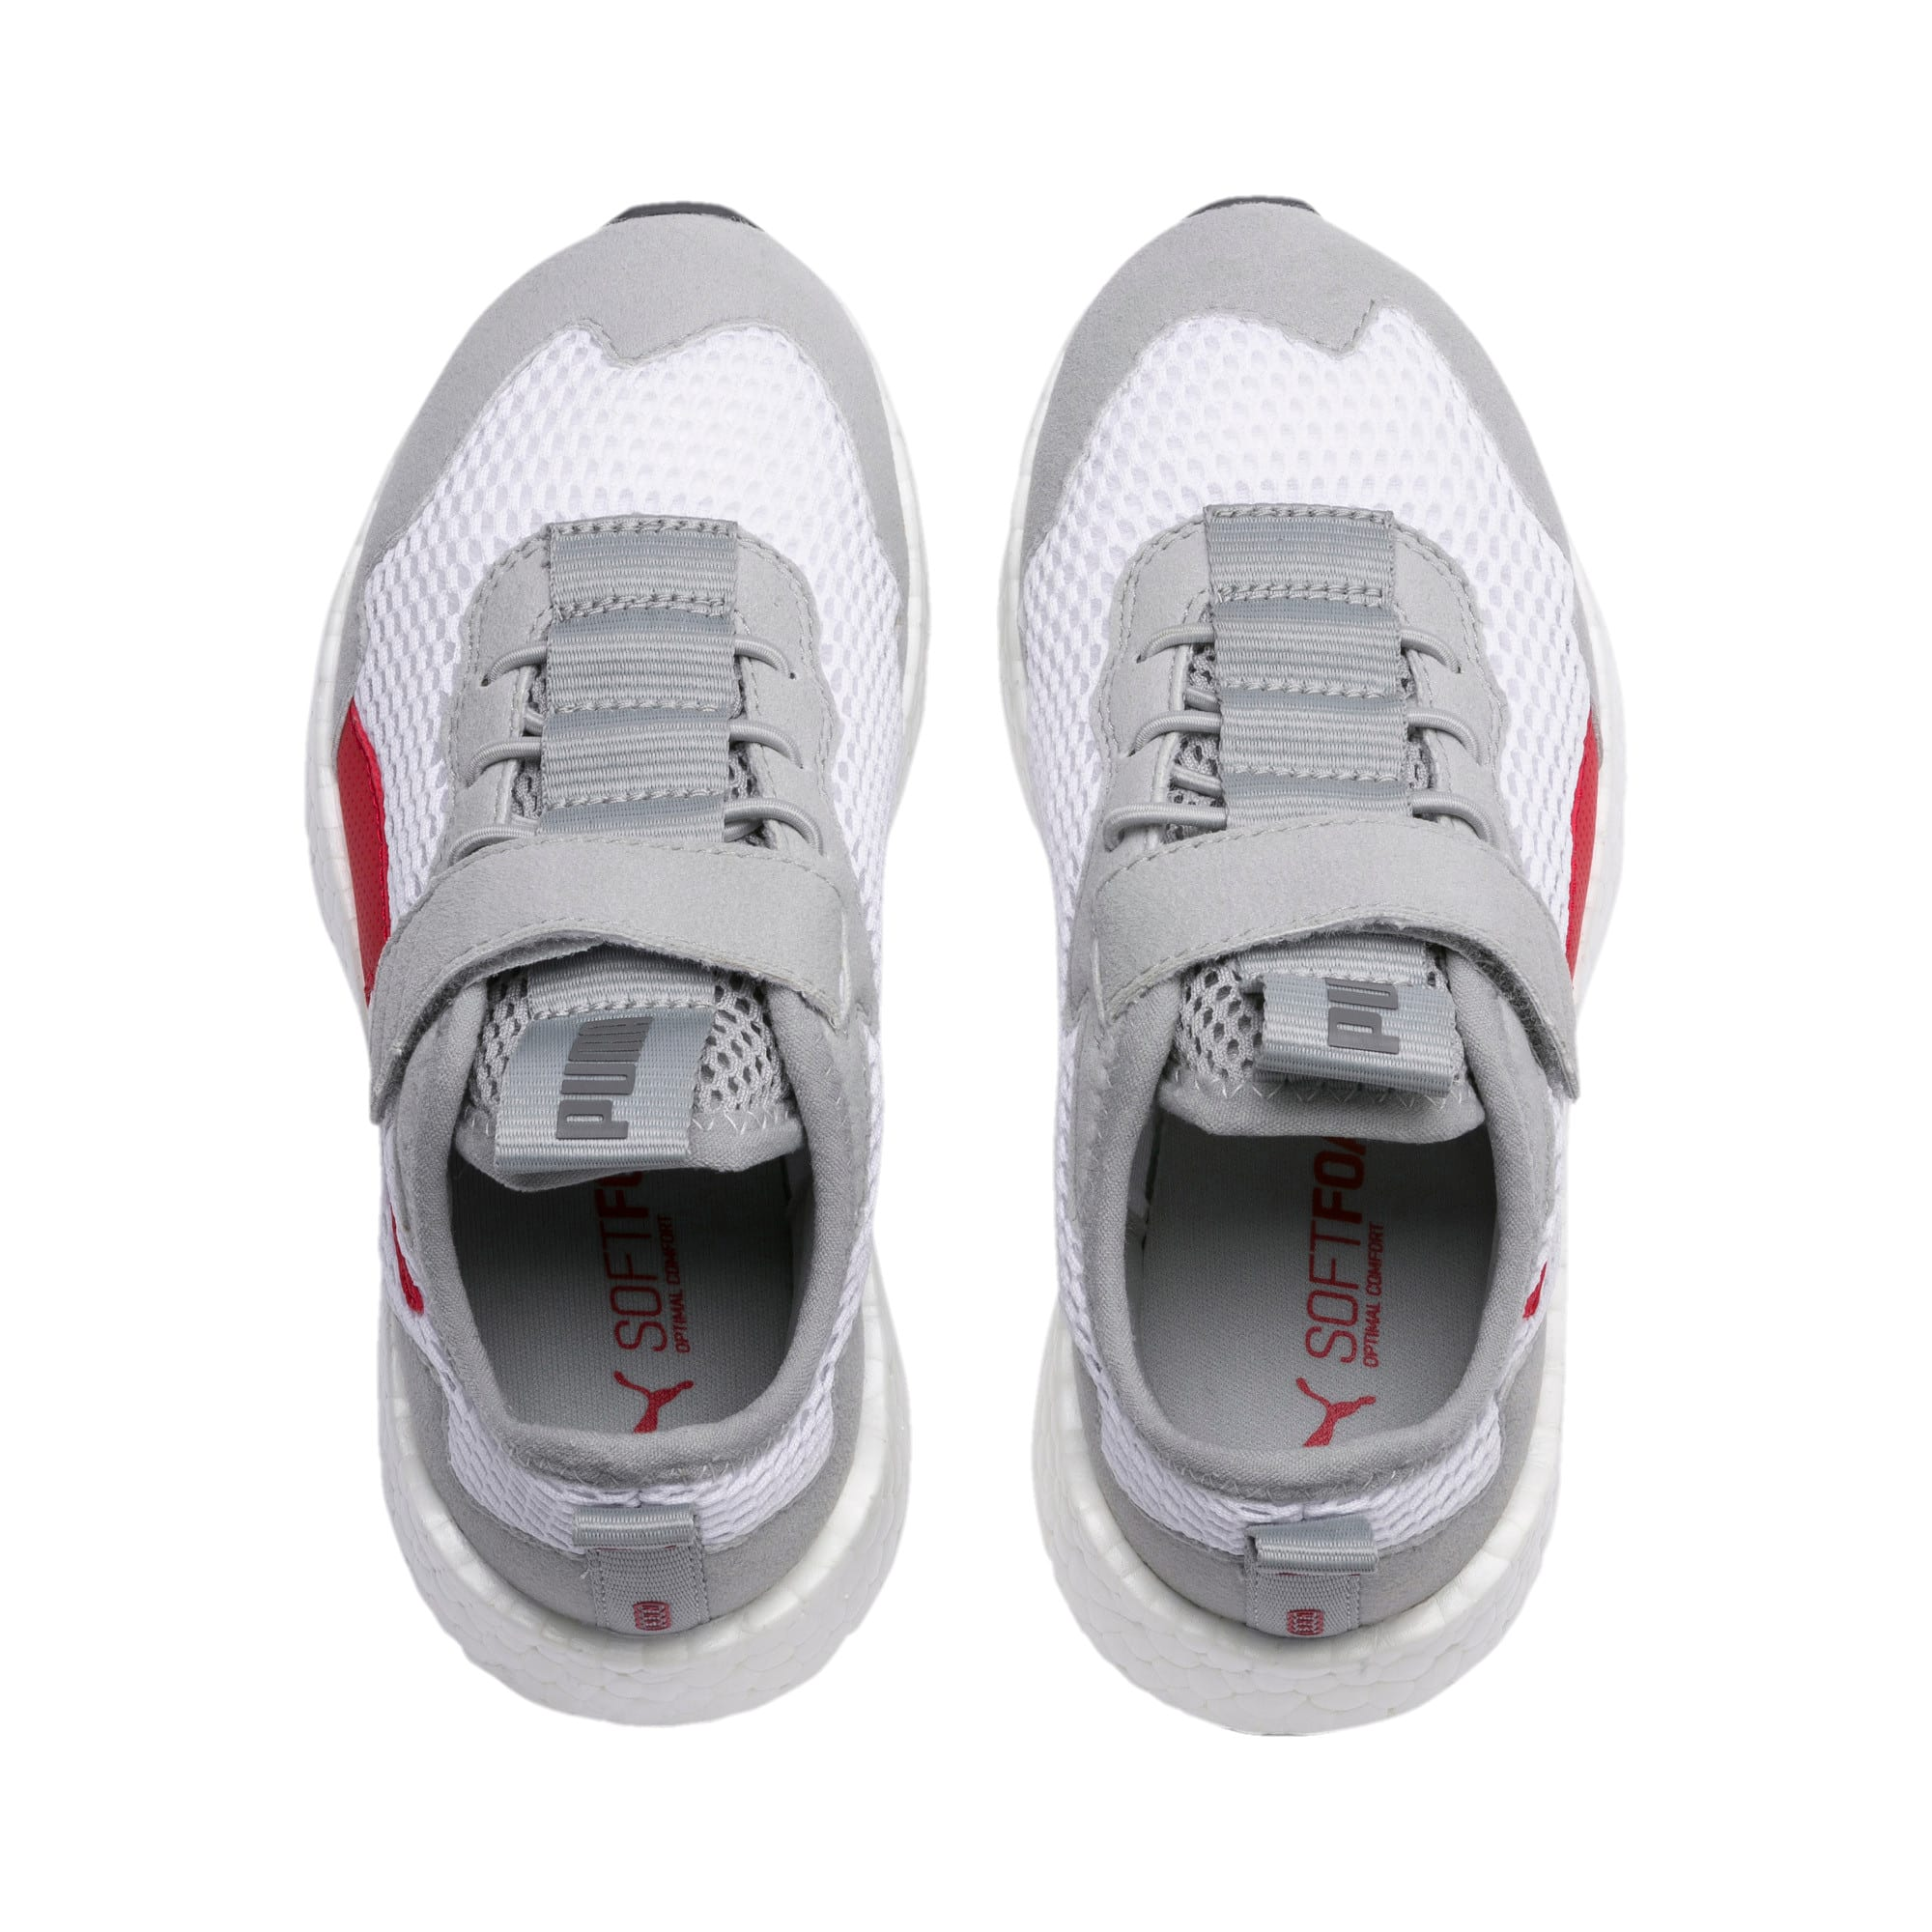 Thumbnail 6 of NRGY Neko Skim AC Kids' Trainers, White-H Rise-CASTLEROCK-Red, medium